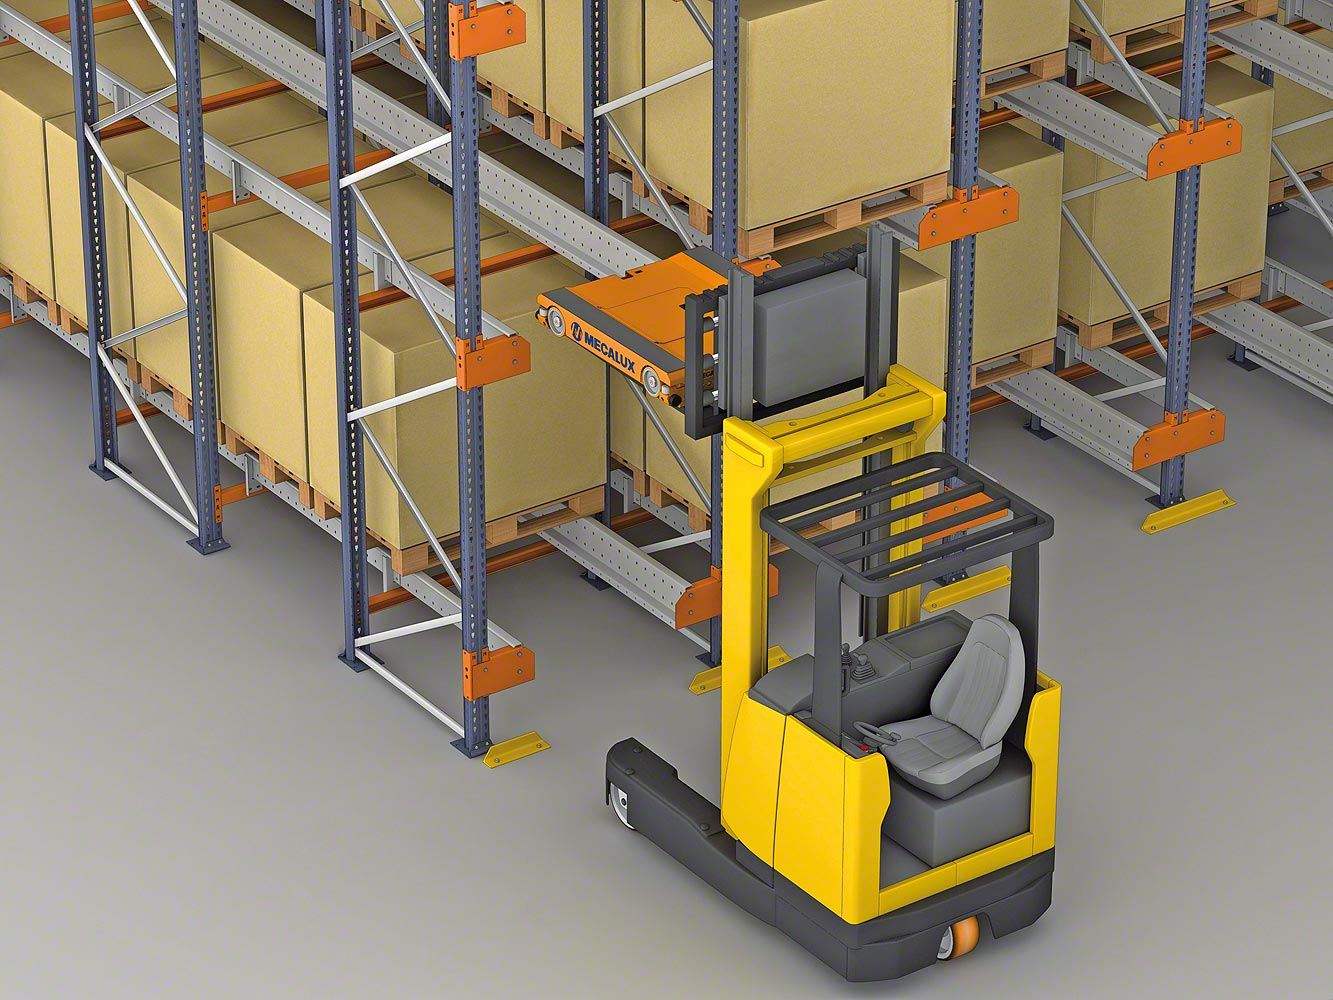 The Pallet Shuttle is placed on the level where work is to be done